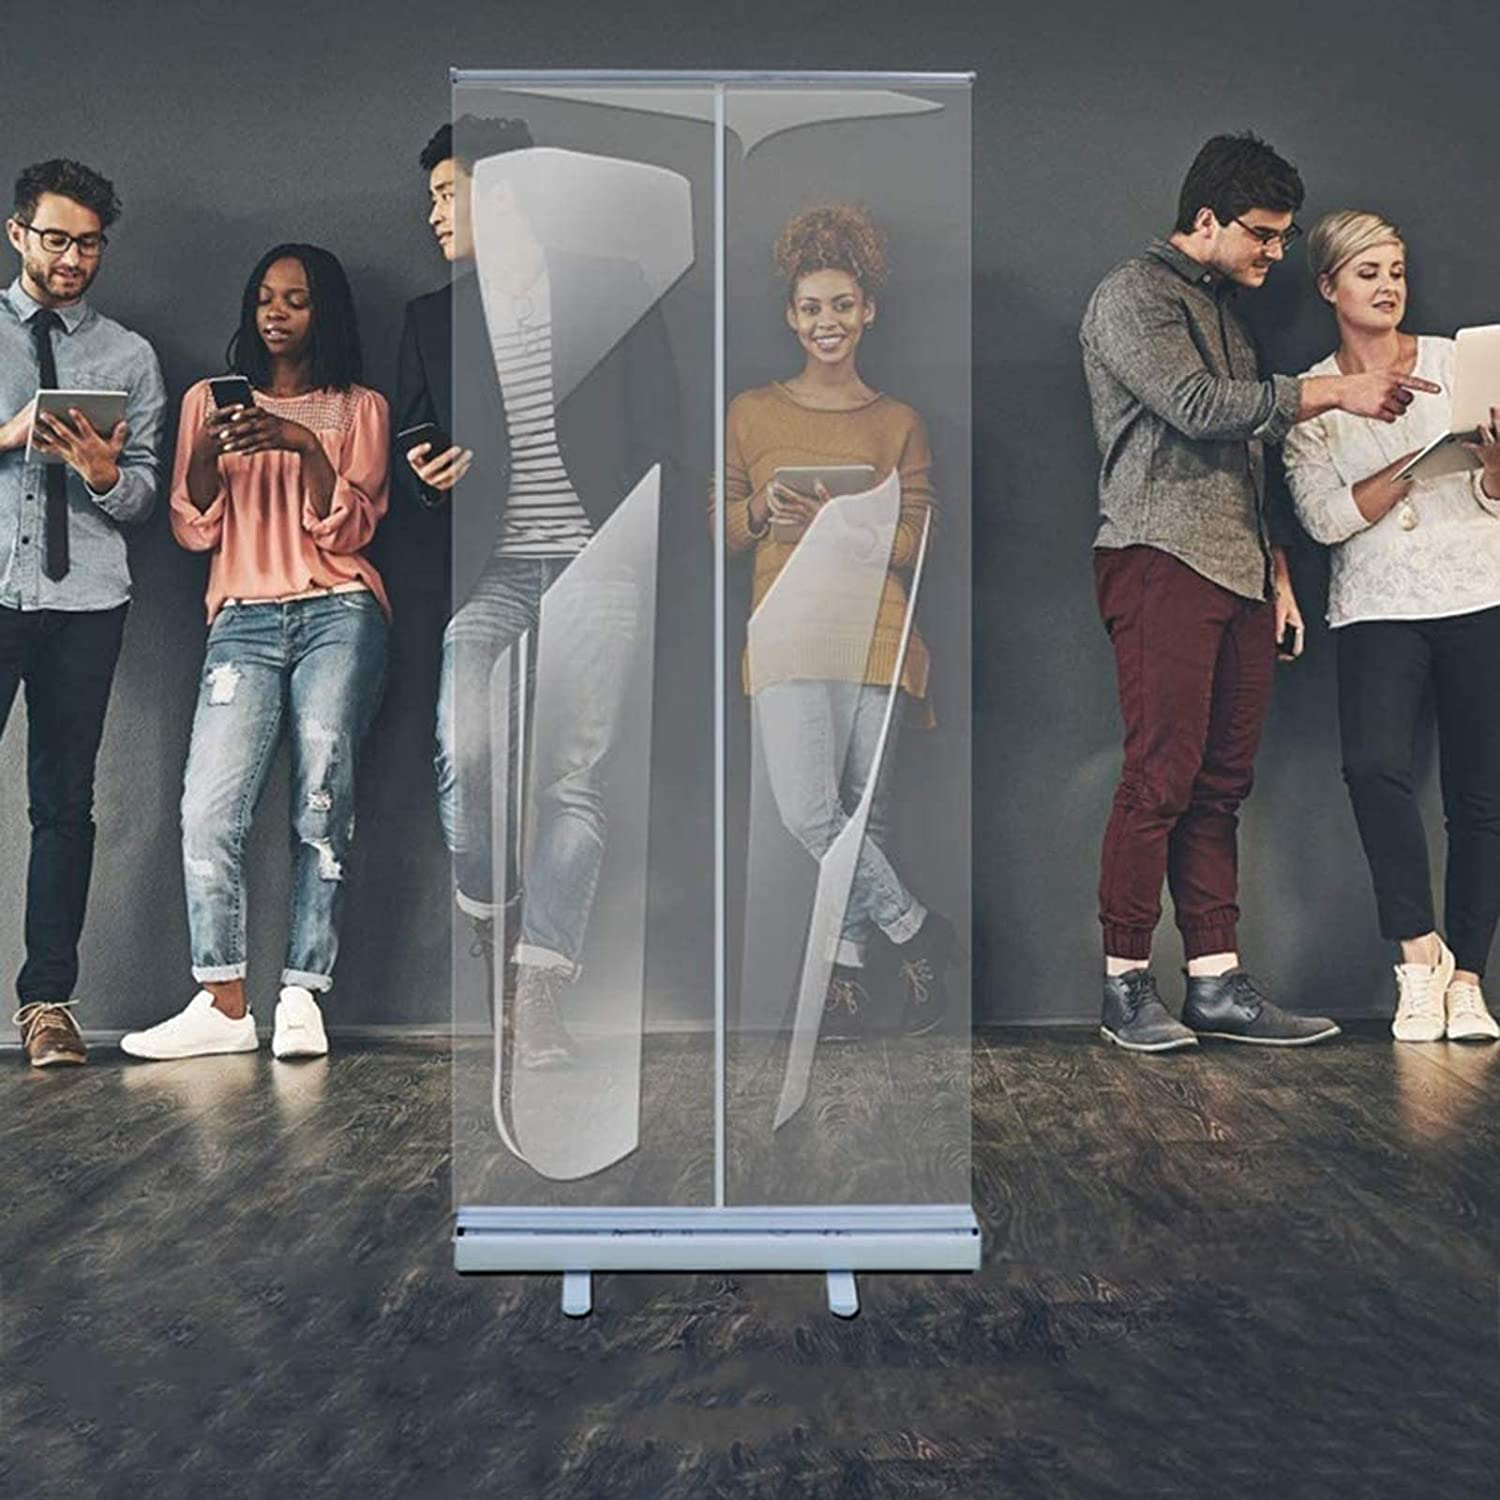 HXFAFA Floor Standing Sneeze Guard,Portable Partition Dividers Clear Screens Sanitation Walls/Great for Offices, Salons, Clinics, Nail Salons, and Restaurants